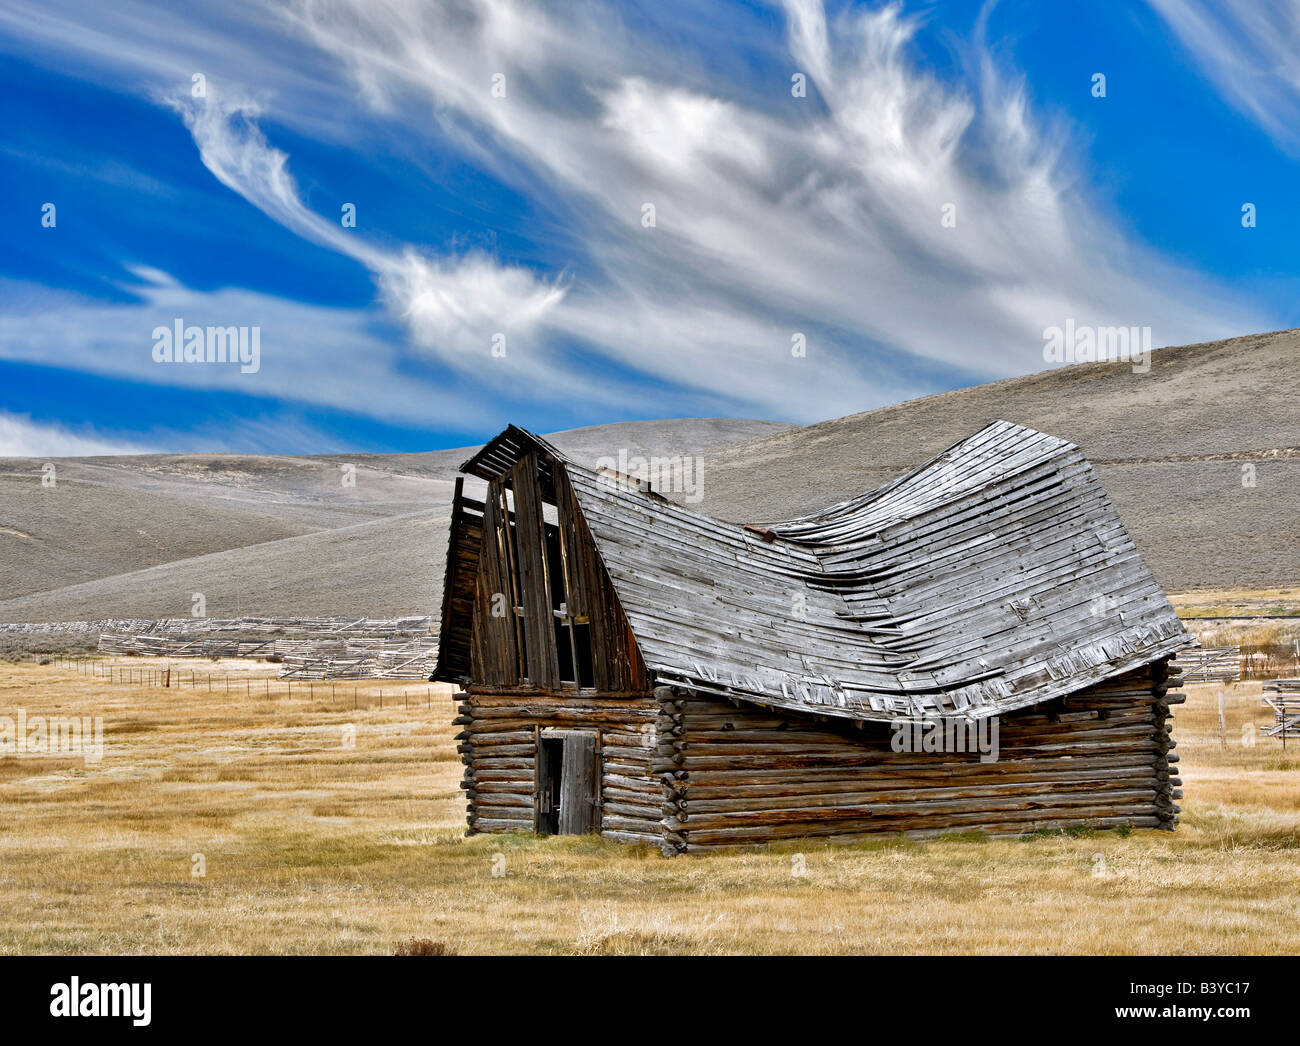 Fallen down barn with wispy clouds Montana - Stock Image